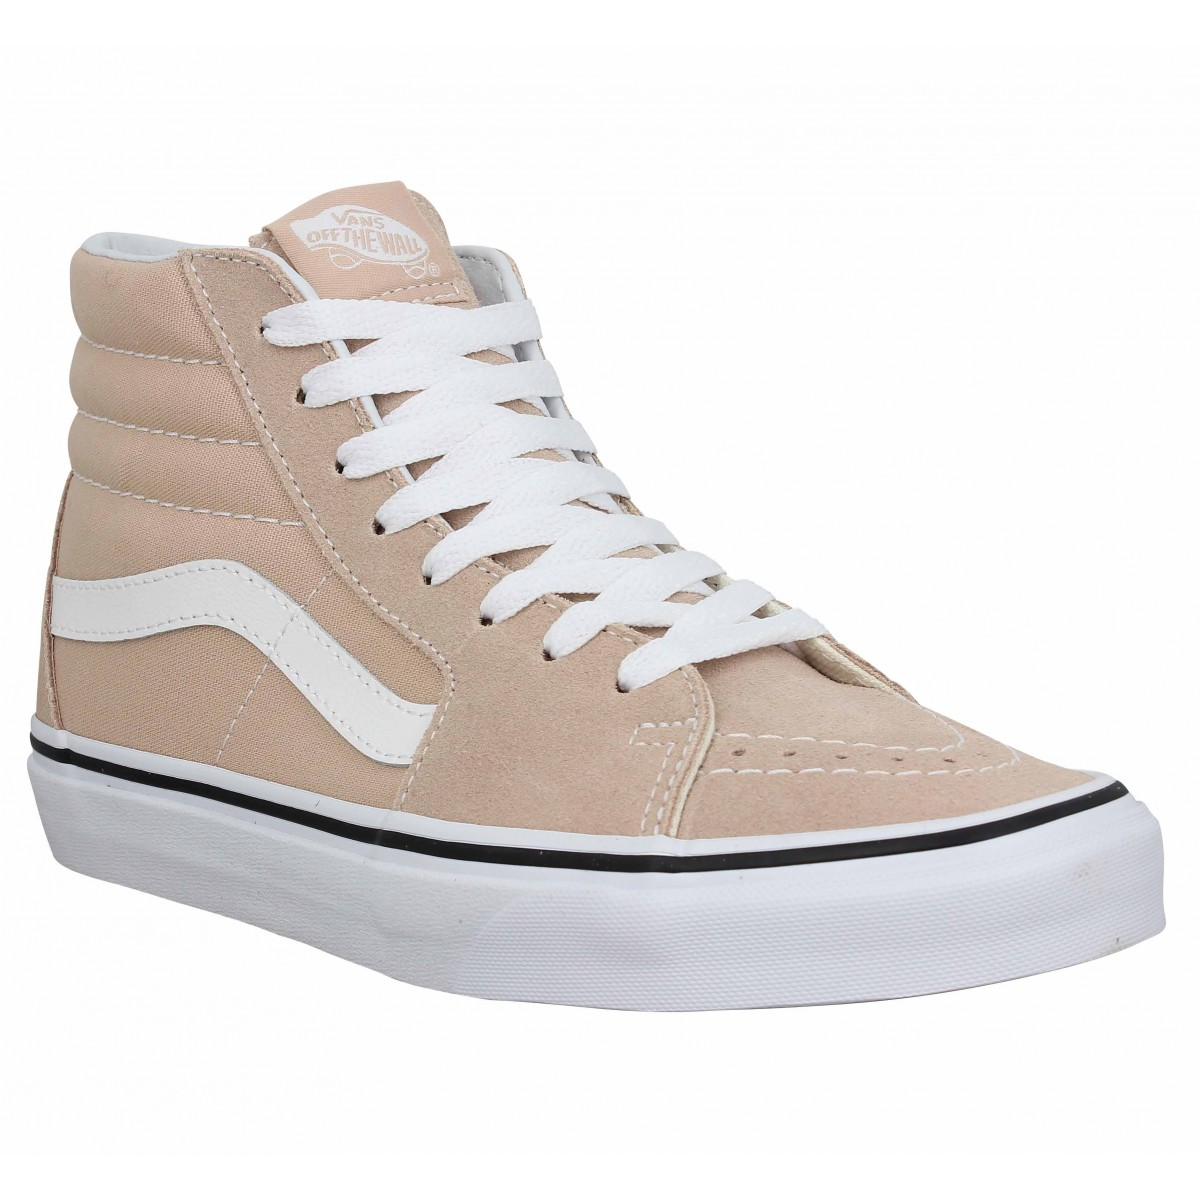 Baskets VANS SK8 Hi velours toile Femme Rose